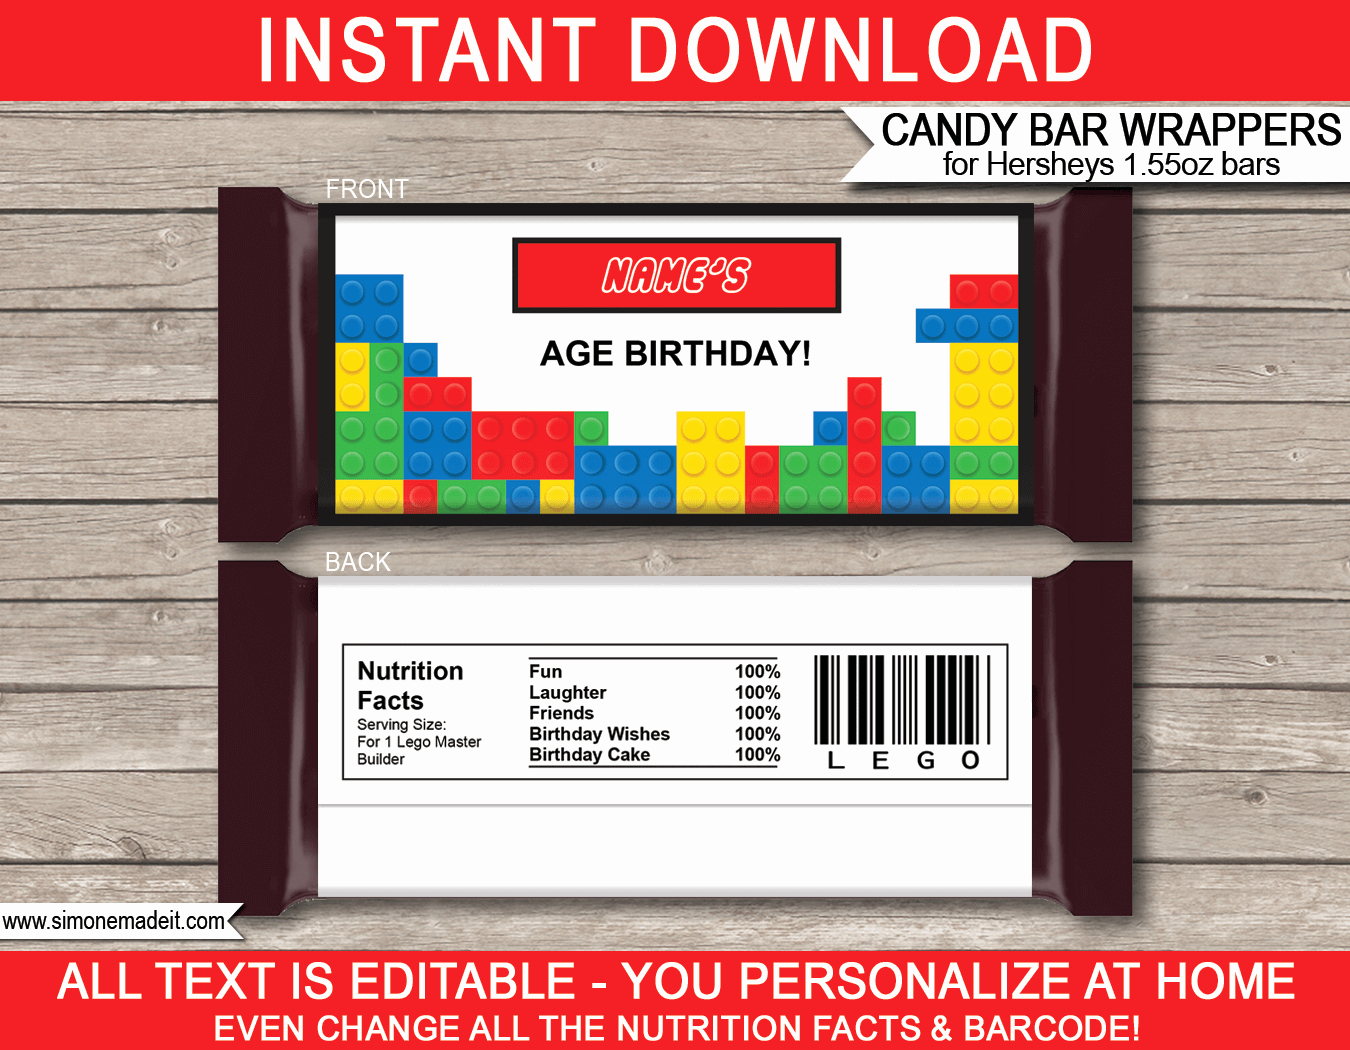 Hershey Bar Wrapper Dimensions Best Of Lego Hershey Candy Bar Wrappers